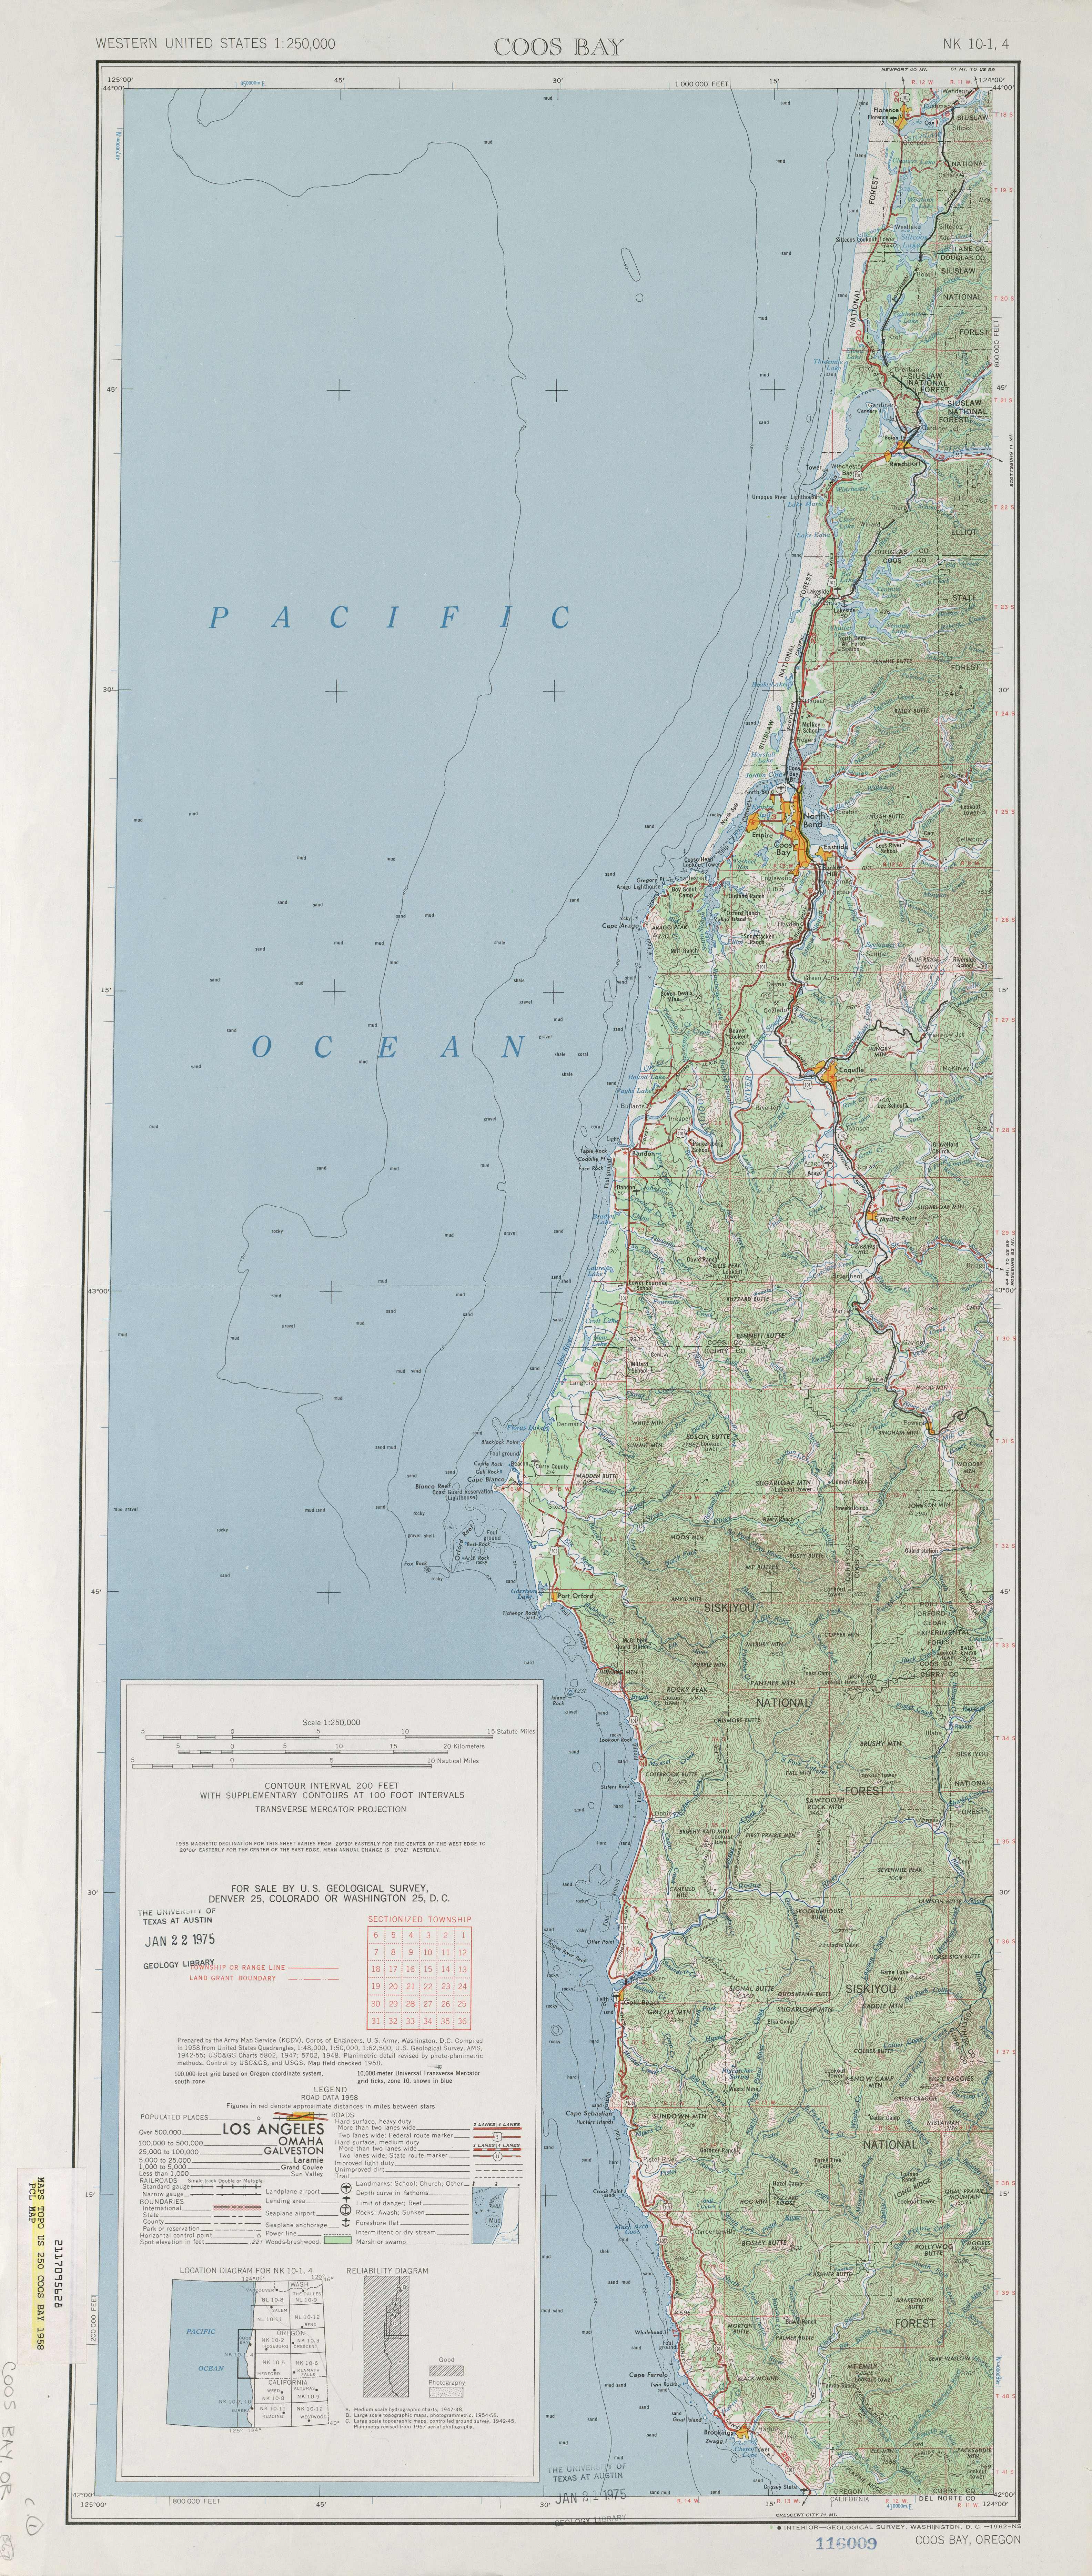 Coos Bay Topographic Map Sheet, United States 1958